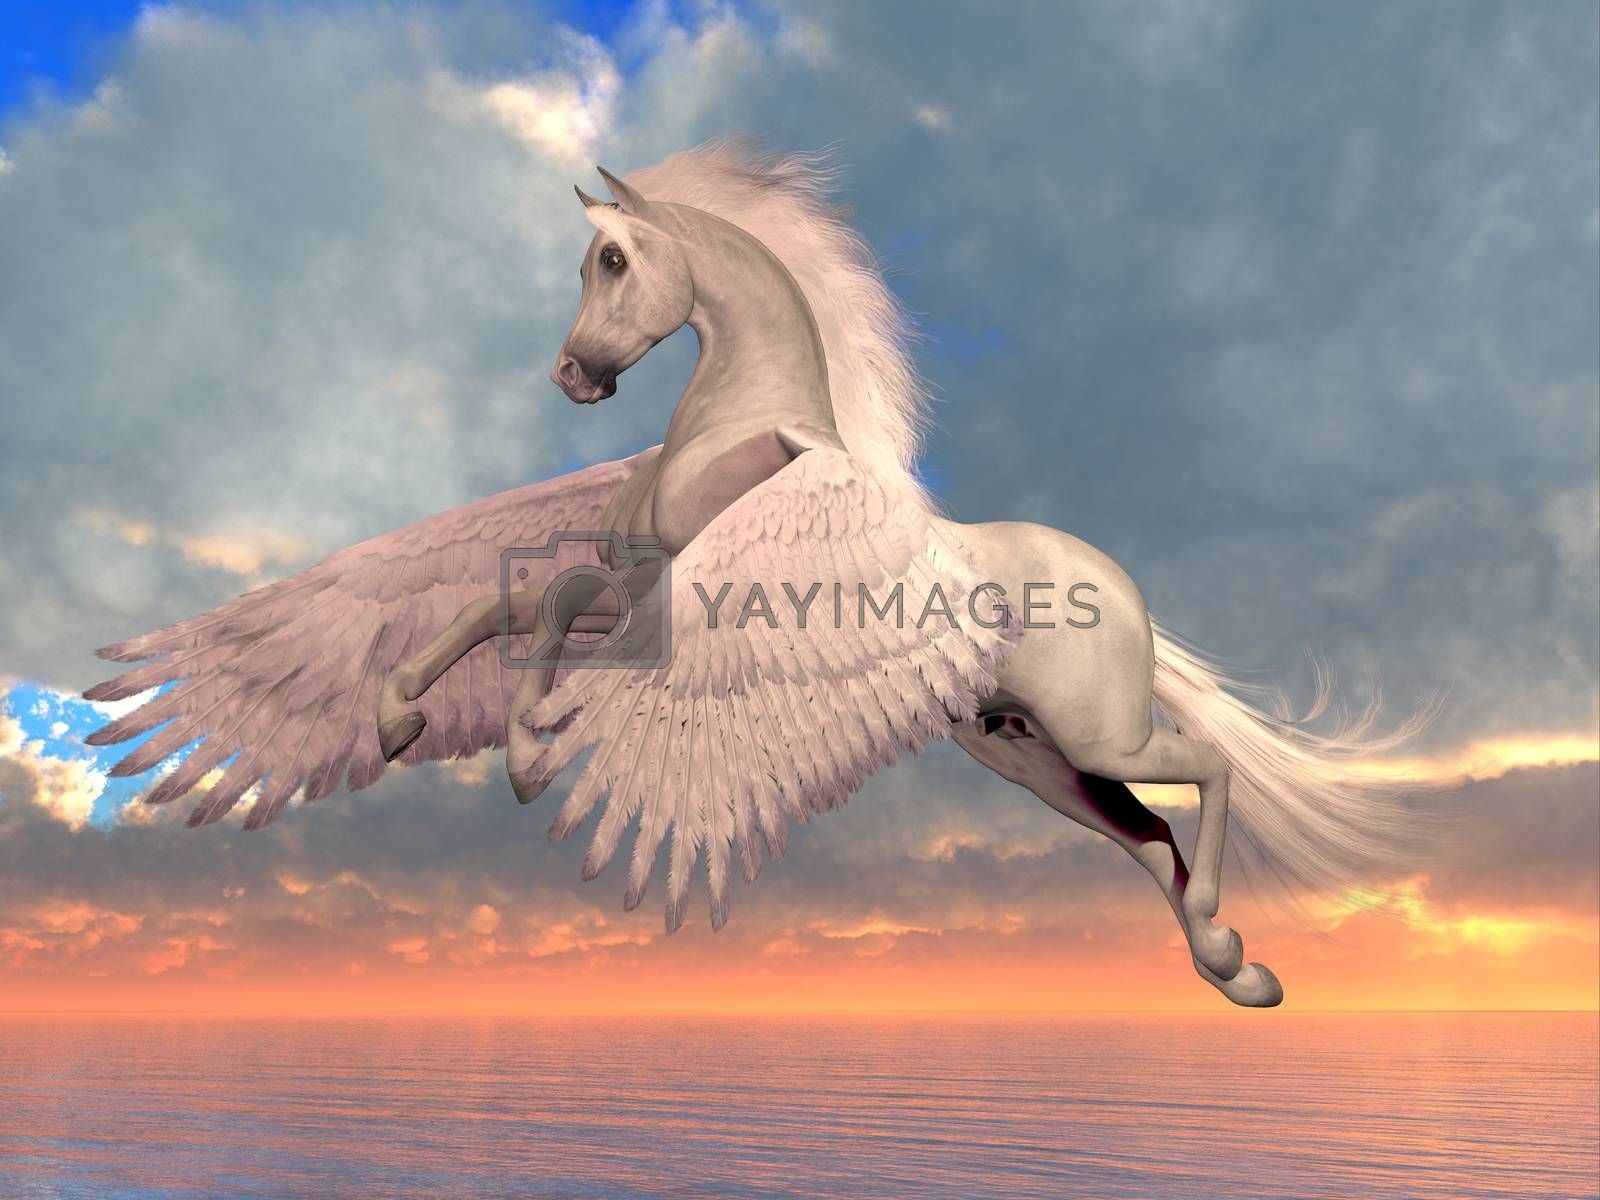 An Arabian Pegasus horse rises on powerful wings to fly over the ocean on a sunny day.